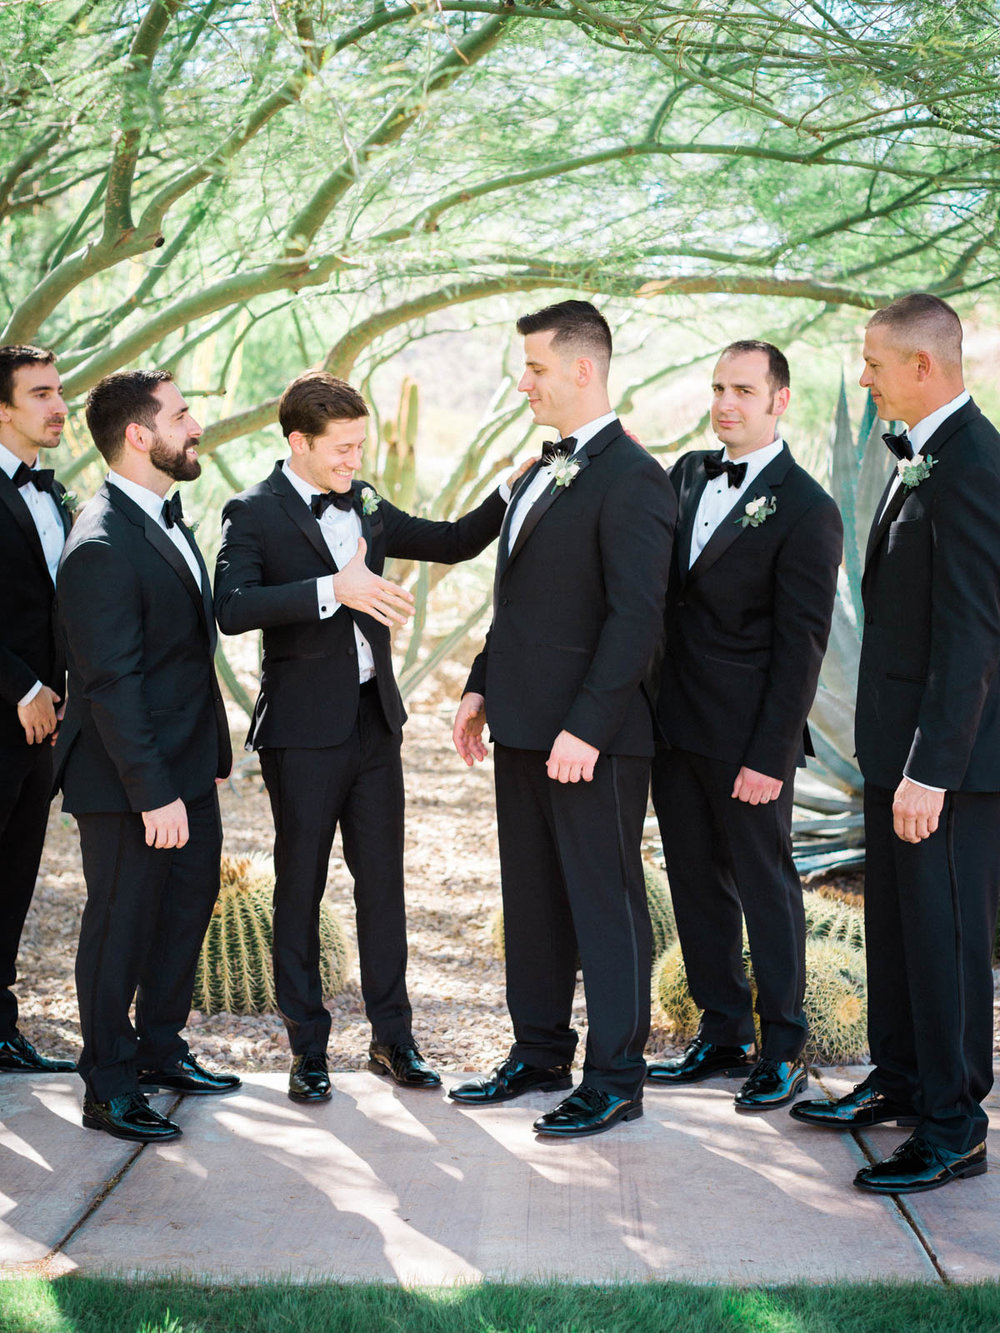 Groom with groomsmen captured by Tucson Wedding Photographers Betsy & John